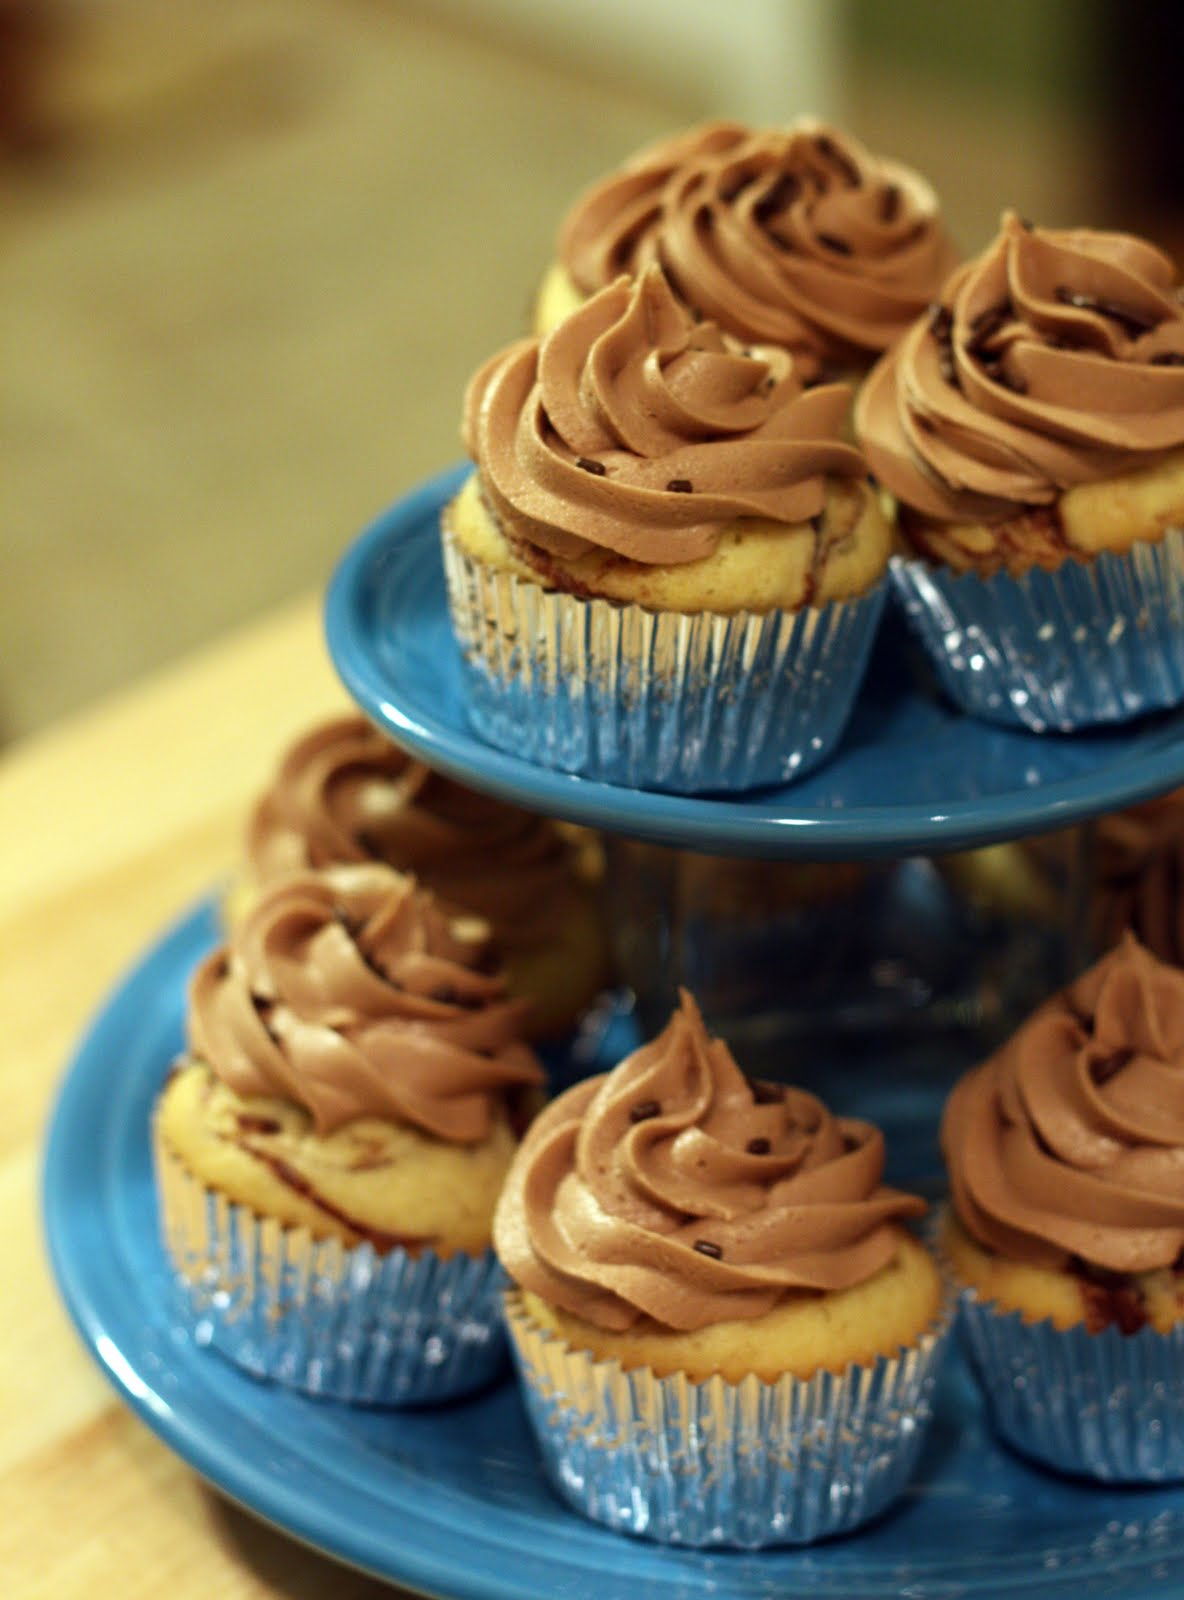 Nutella Cupcakes from The Doctor's Dishes, Desserts &amp; Decor